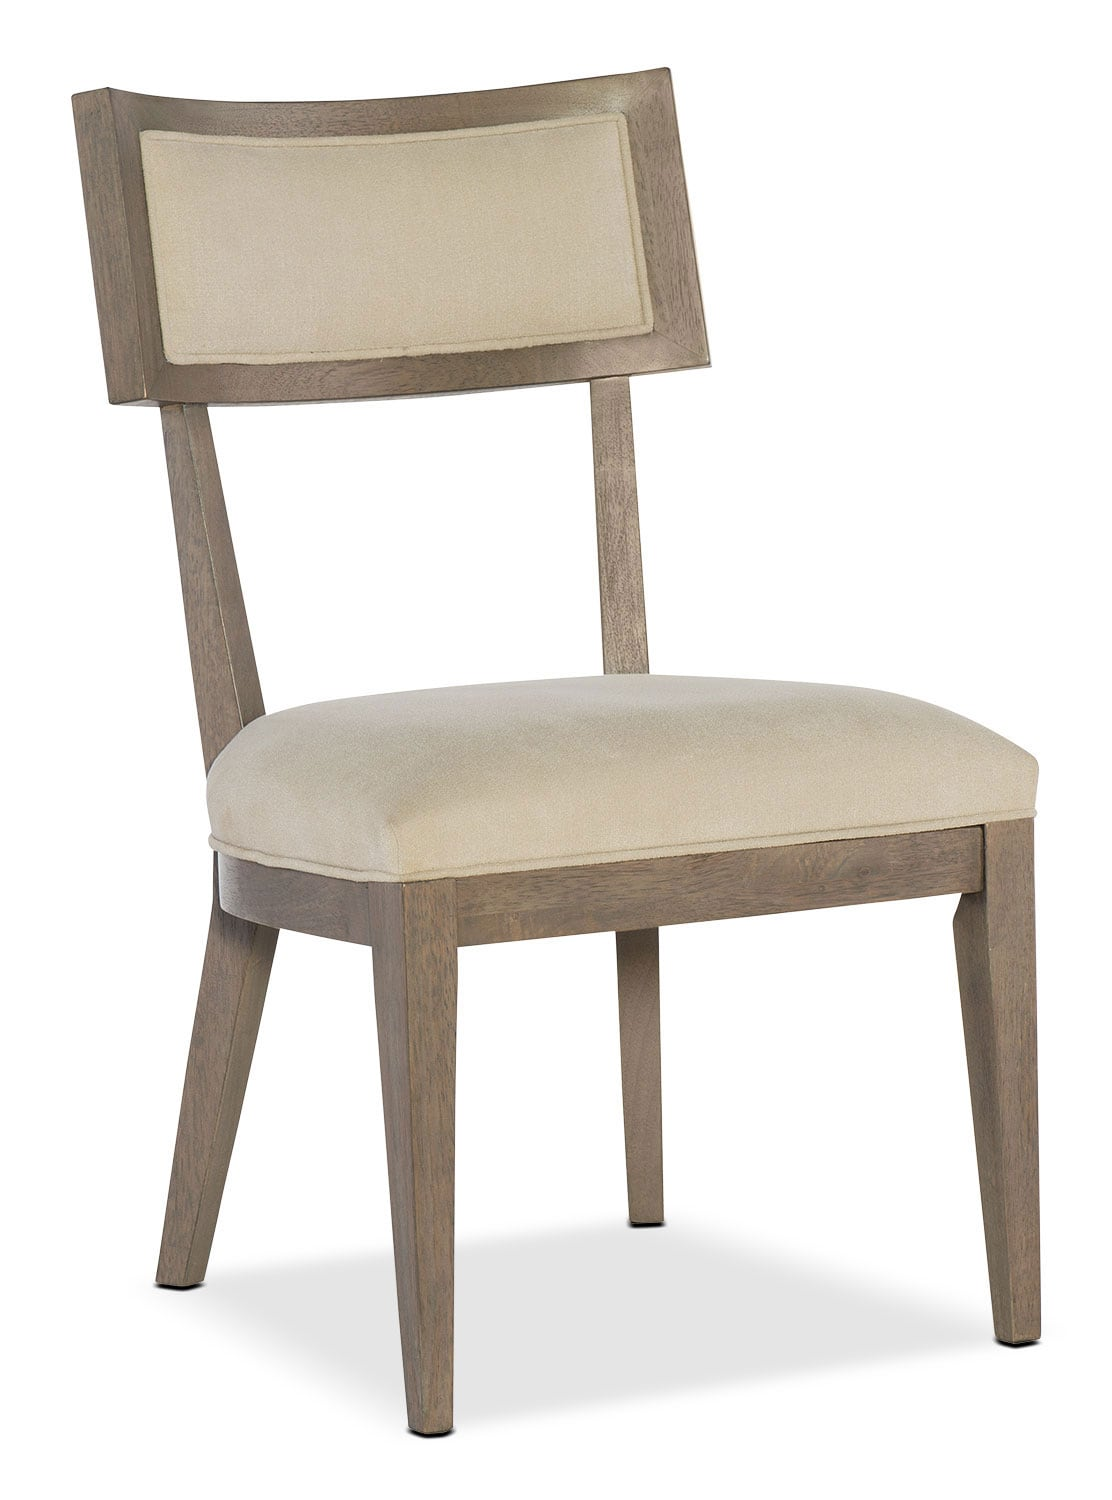 Rachael Ray Highline Chair - Greige